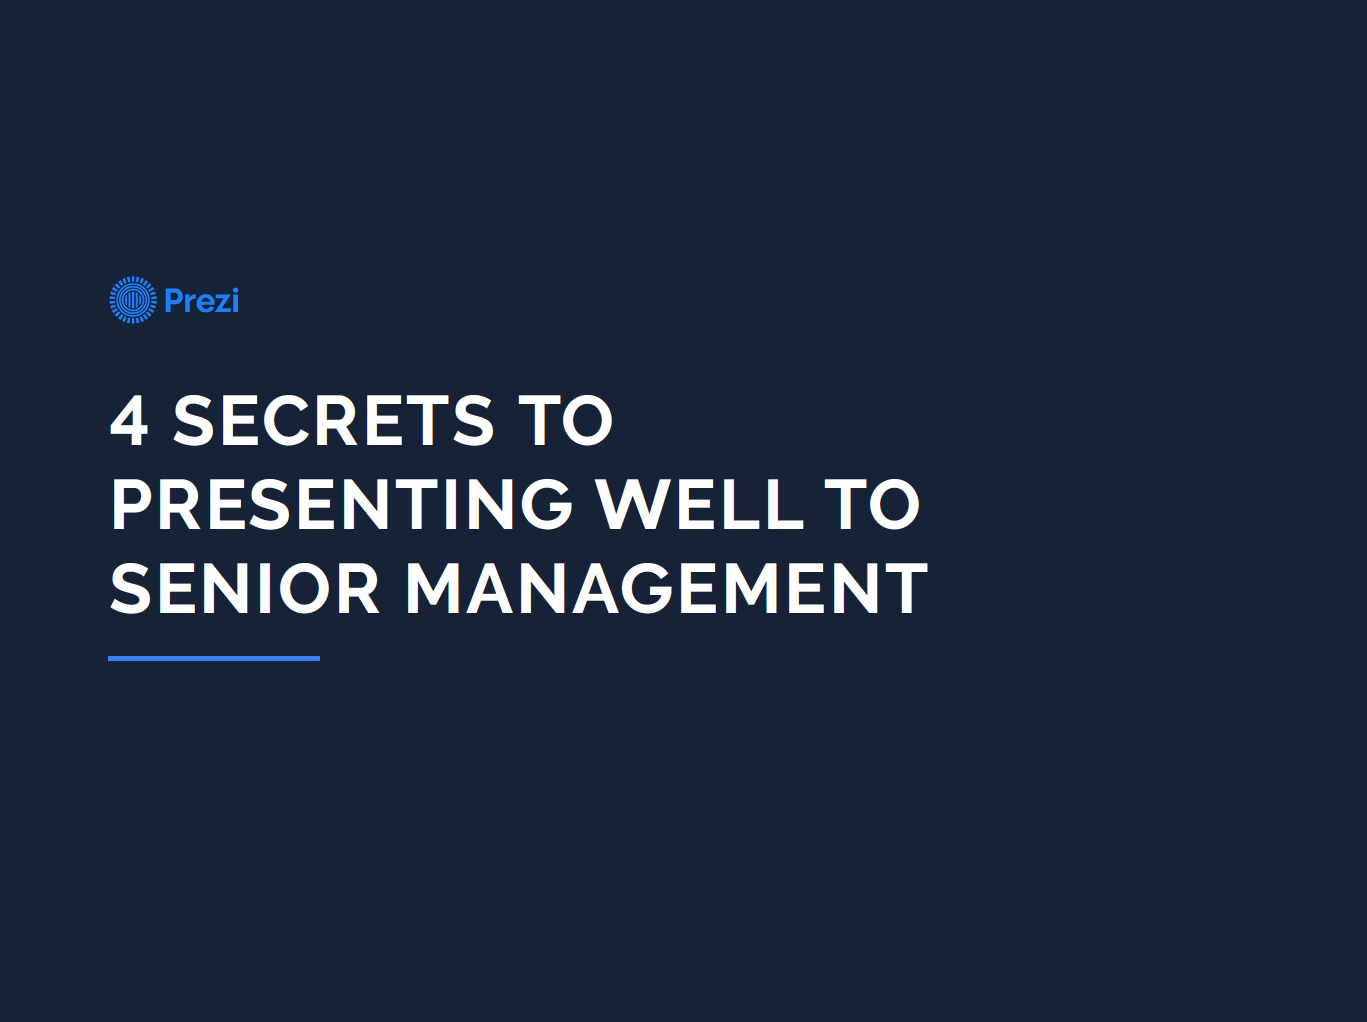 TBMfW - 4 Secrets on presenting to Senior Management